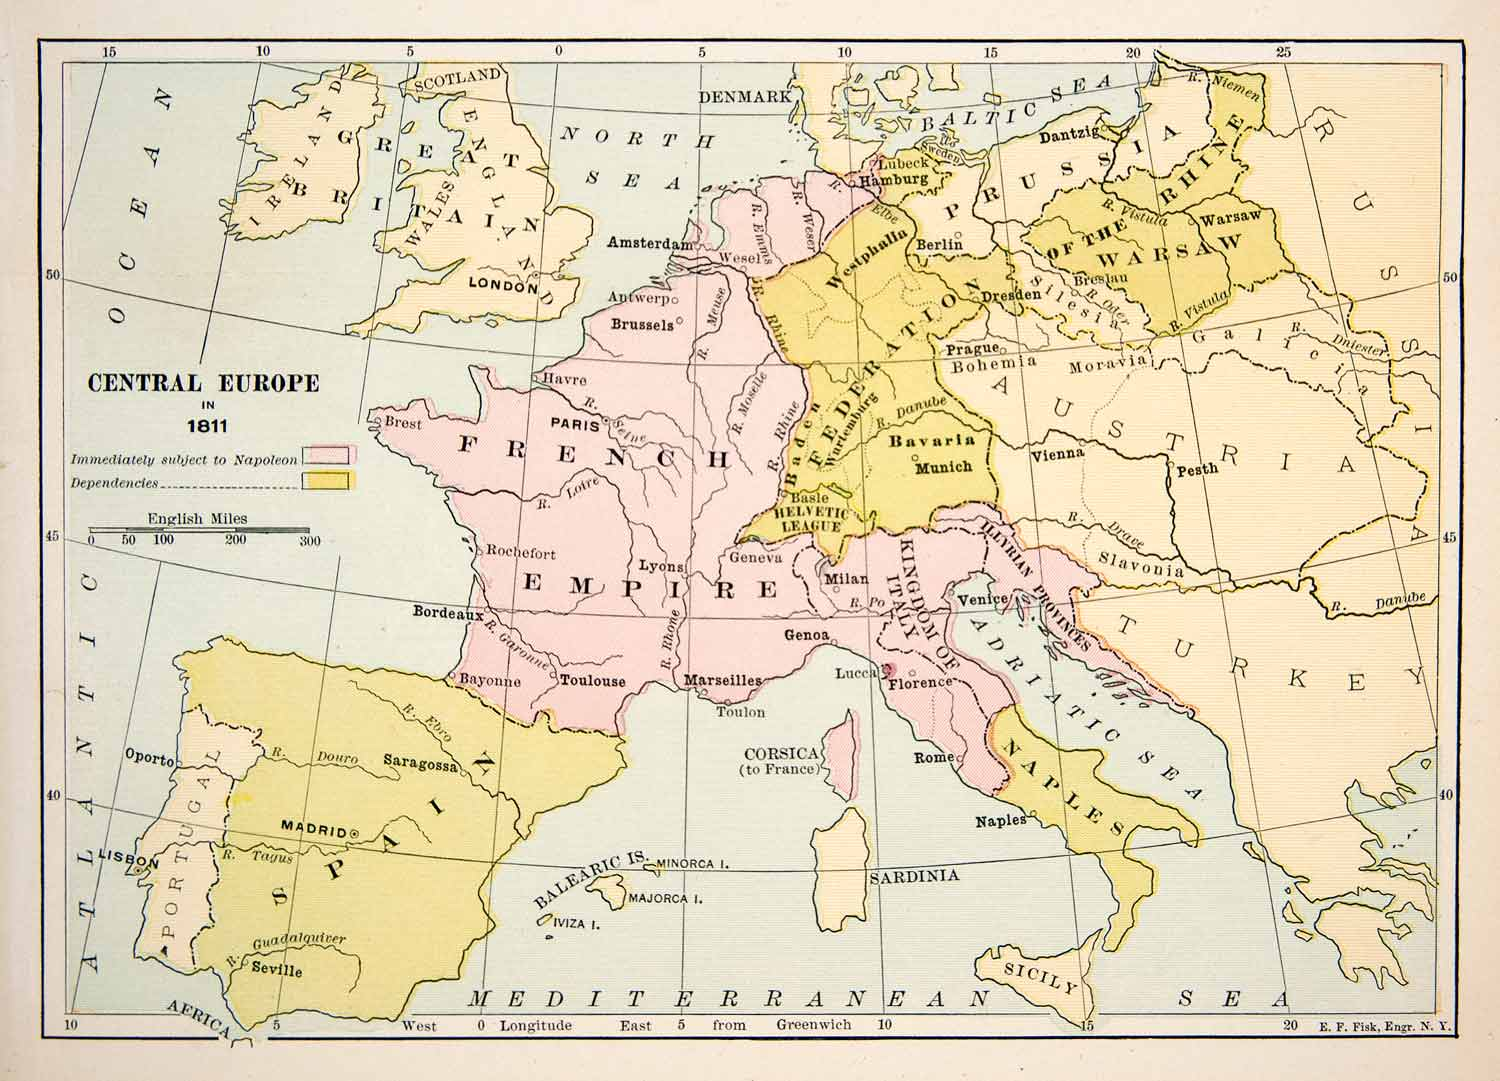 1891 print antique 1811 map central europe england germany italy 1891 print antique 1811 map central europe england germany italy france xer5 gumiabroncs Choice Image